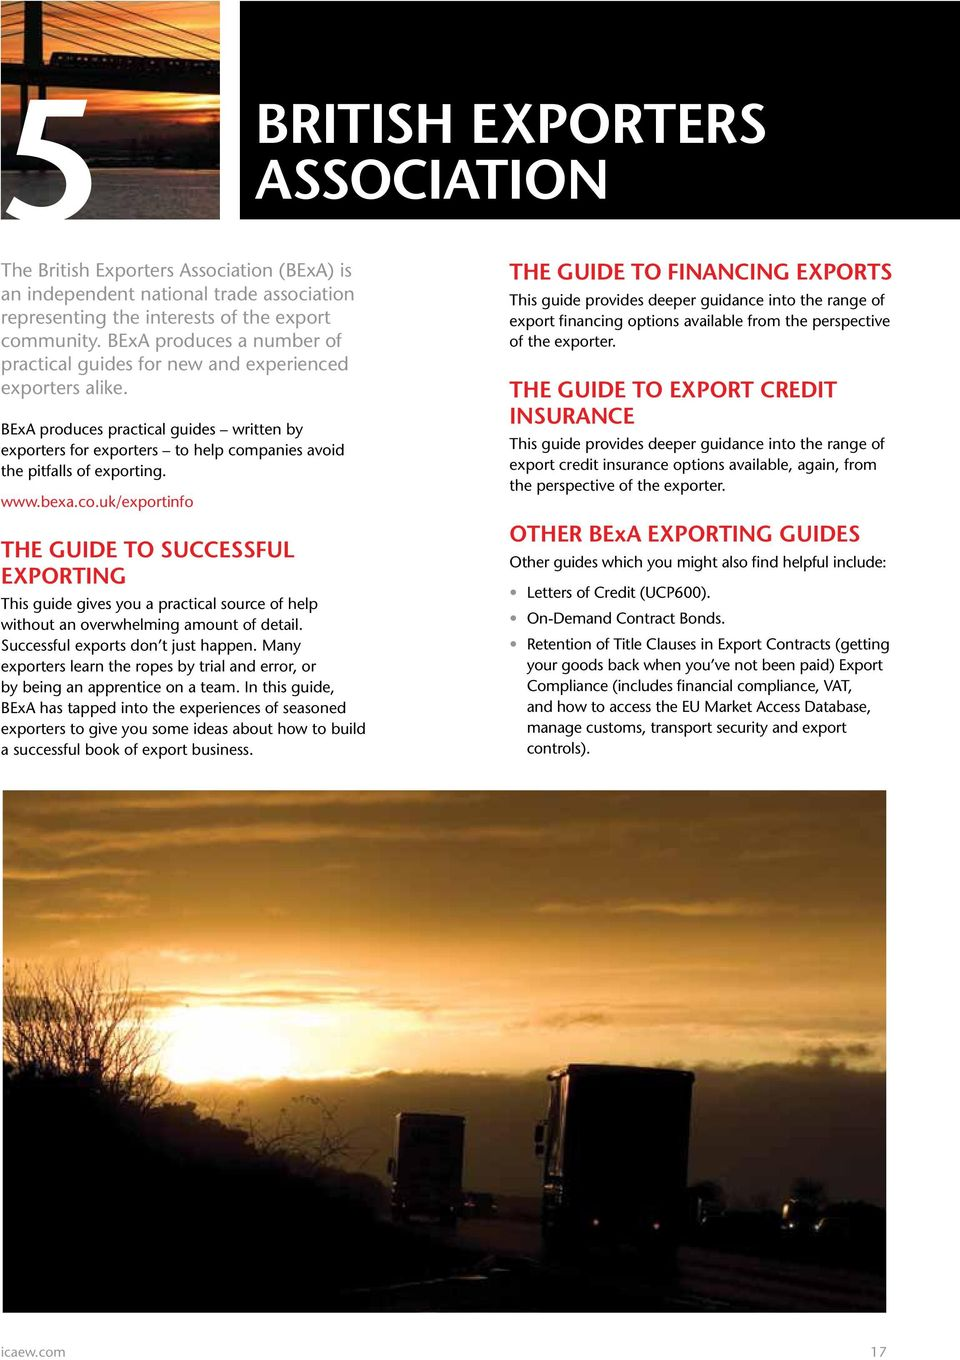 www.bexa.co.uk/exportinfo The guide to successful exporting This guide gives you a practical source of help without an overwhelming amount of detail. Successful exports don t just happen.